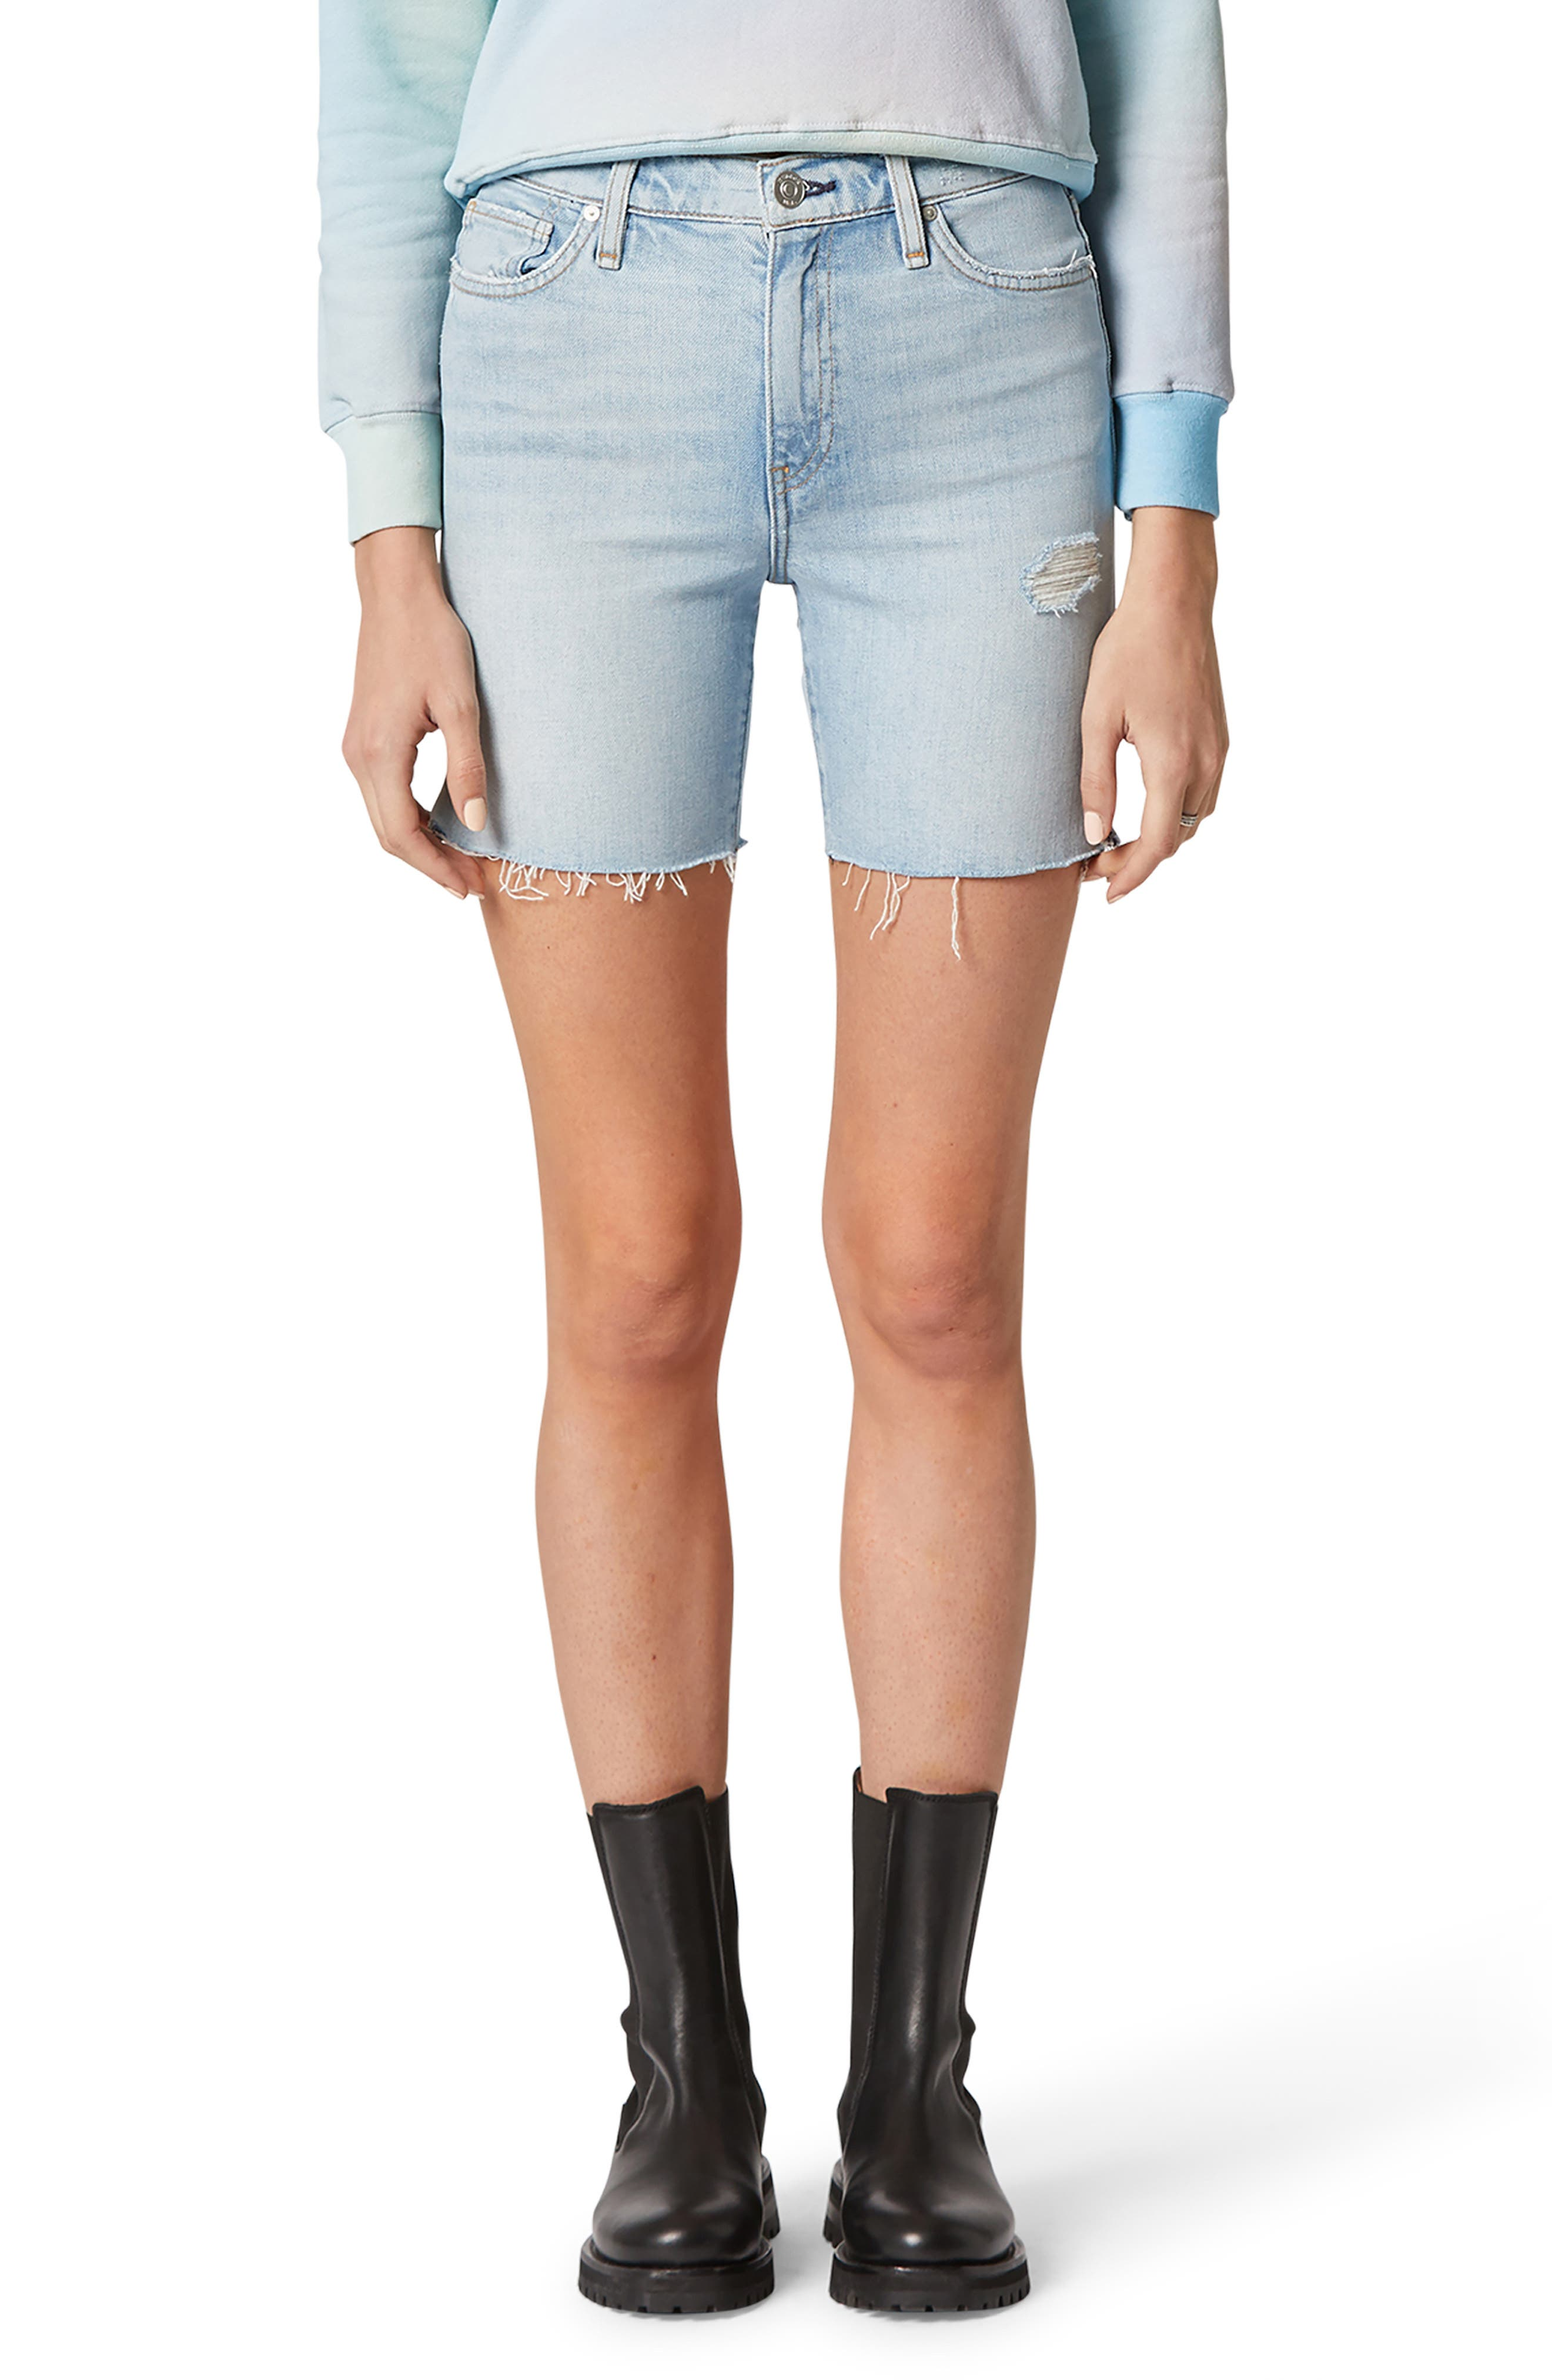 A sleek fit and notch at the sides belies the classic cutoff style of these well-faded nonstretch-denim shorts you\\\'ll reach for on the regular. Style Name: Hudson Jeans Hana High Waist Cutoff Denim Biker Shorts. Style Number: 6011113. Available in stores.